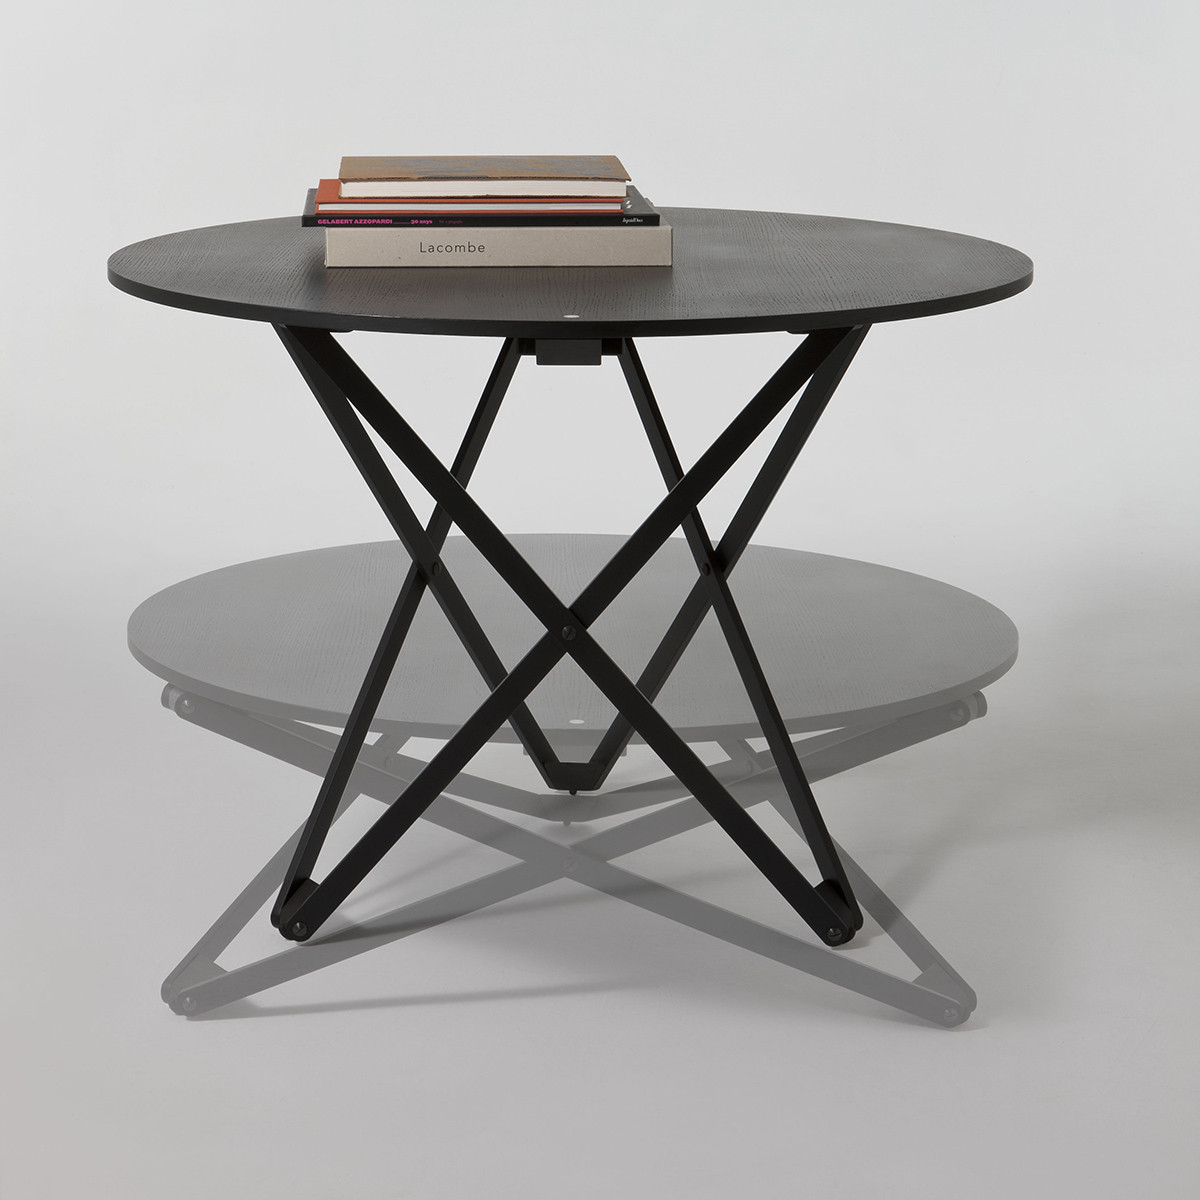 SUBEYBAJA Table - Adjustable height round table by santa-cole